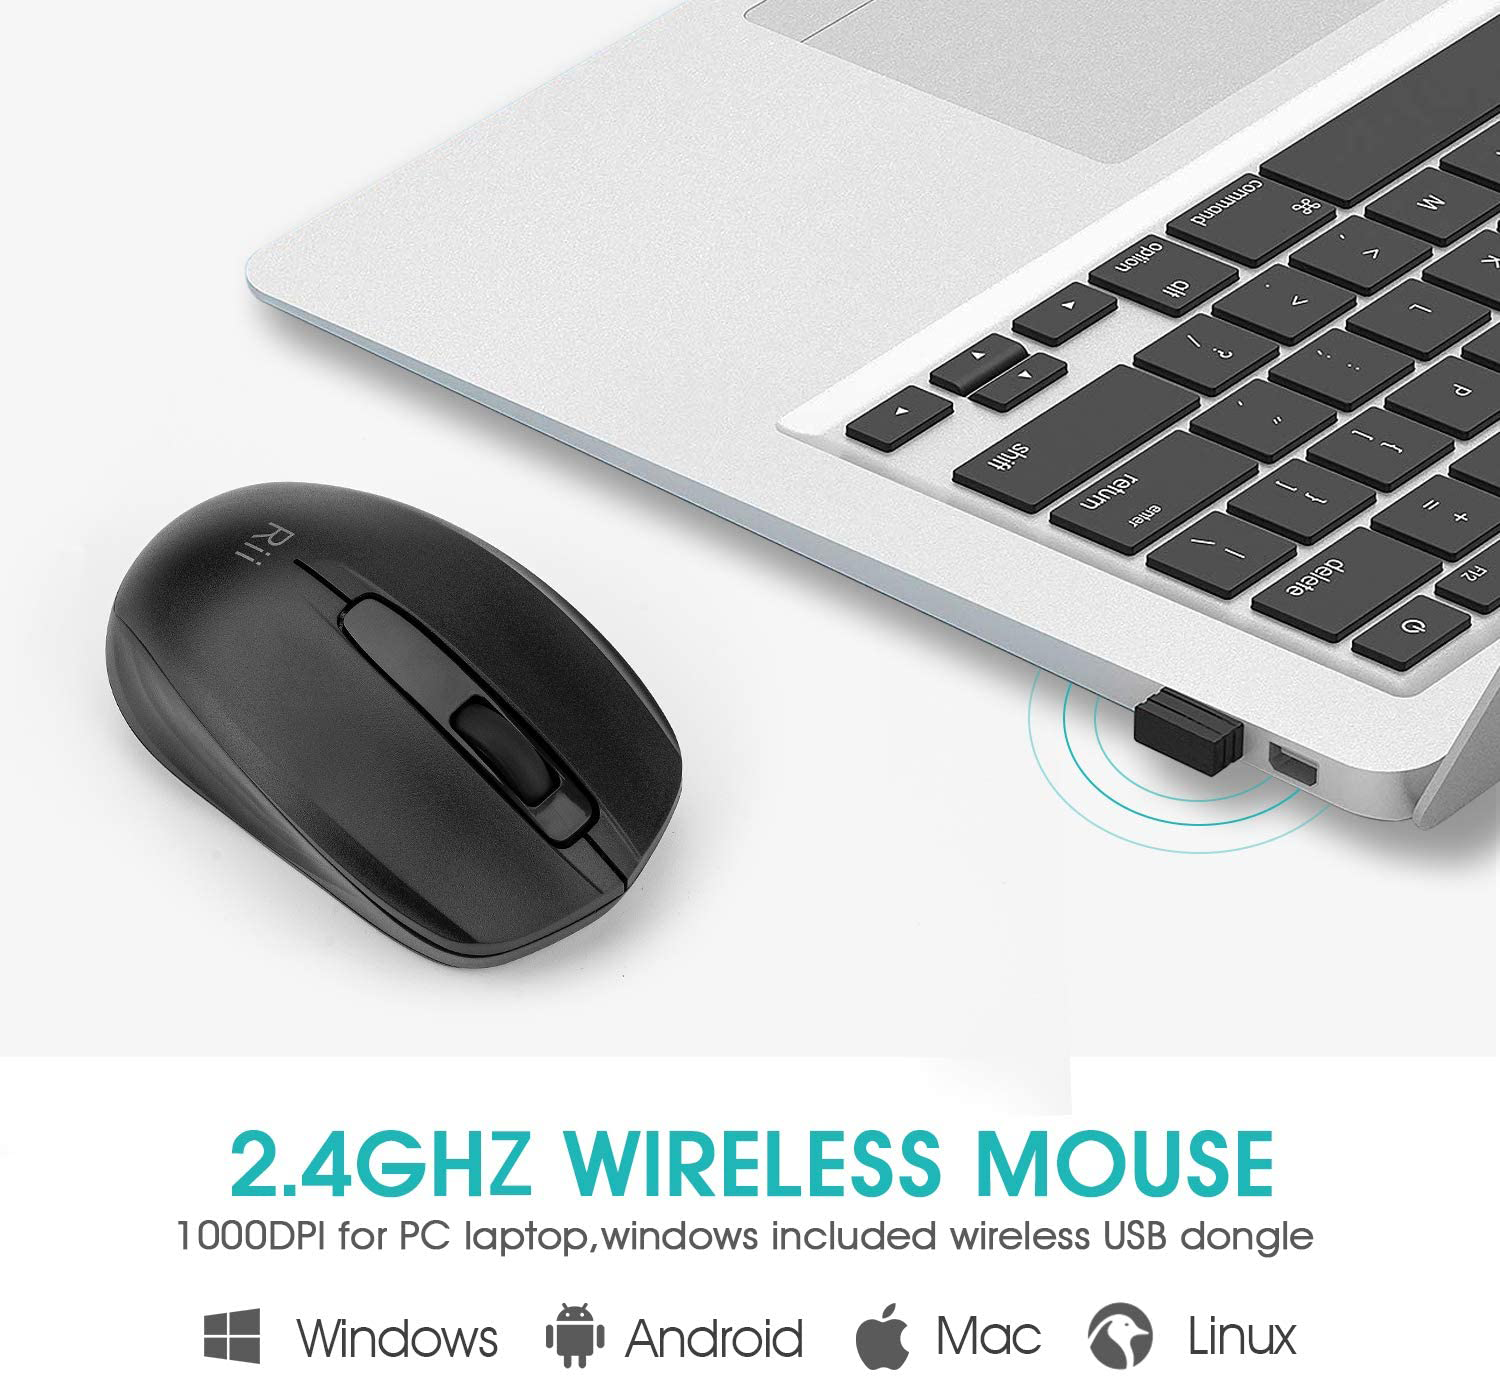 Rii Wireless Mouse,2.4G USB Wireless Mice 1000 DPI Optical PC Laptop Computer Mouse with Nano Receiver for School Kids Office Home Hover